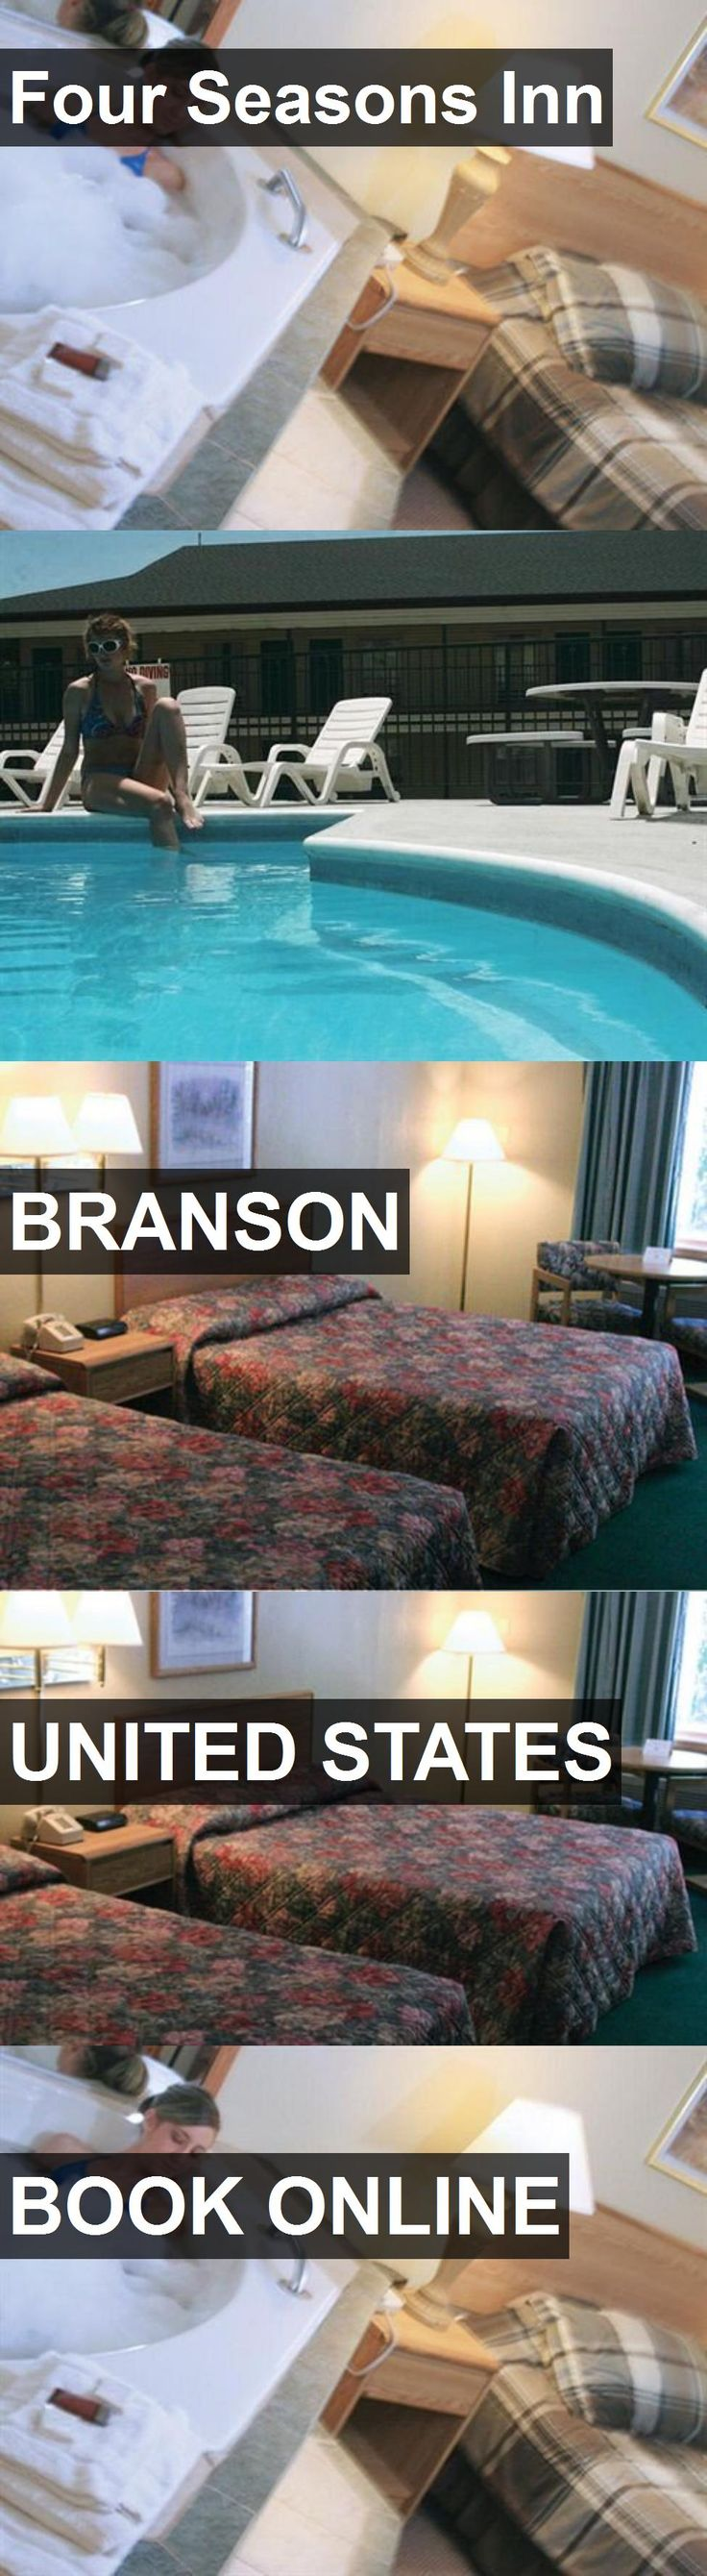 Hotel Four Seasons Inn in Branson, United States. For more information, photos, reviews and best prices please follow the link. #UnitedStates #Branson #travel #vacation #hotel